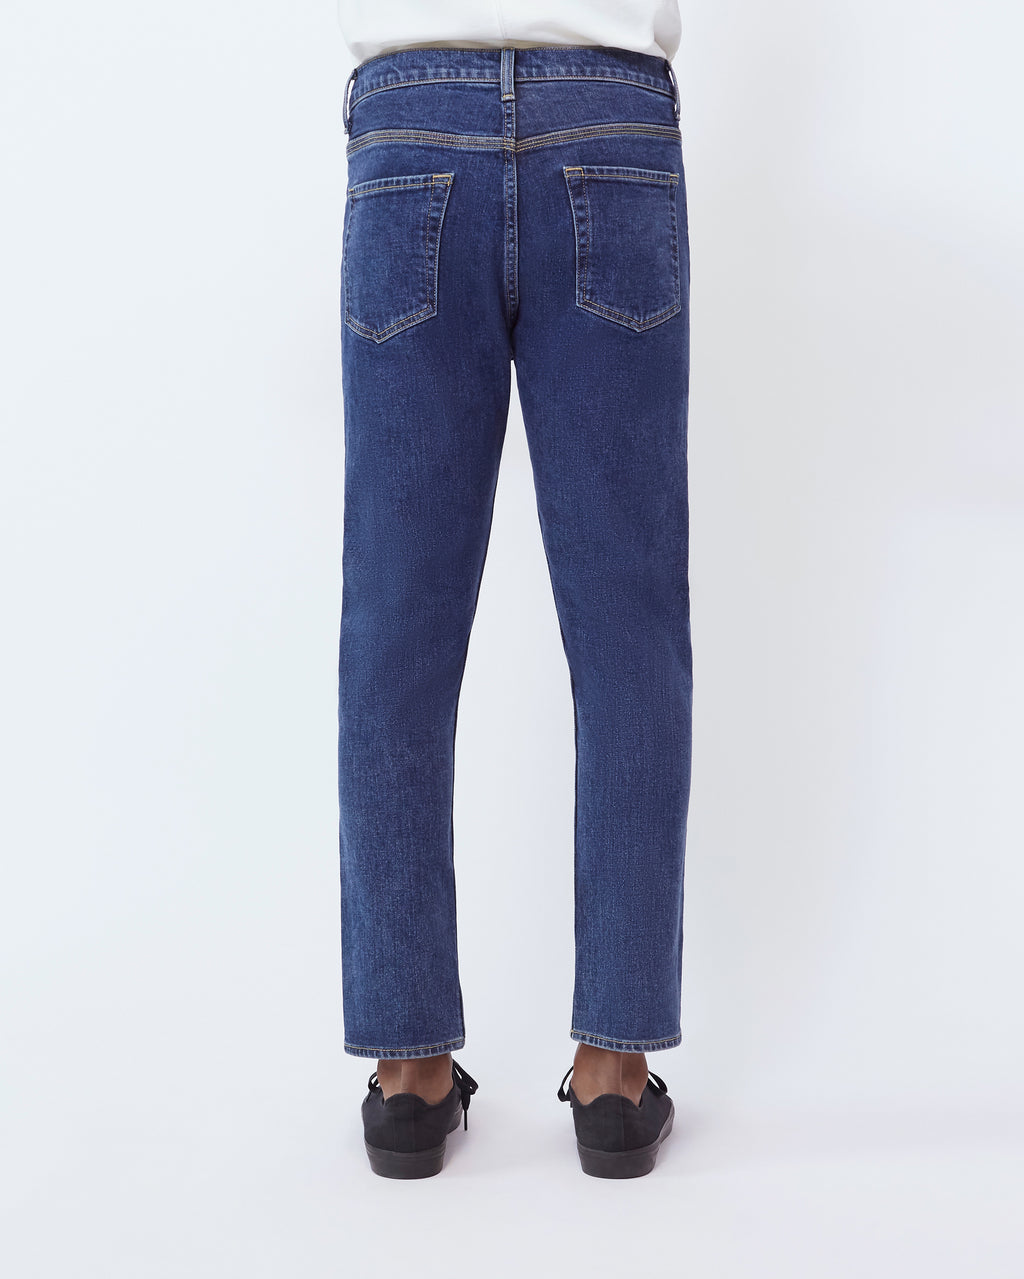 The Modern Taper Jean in Blue Indigo